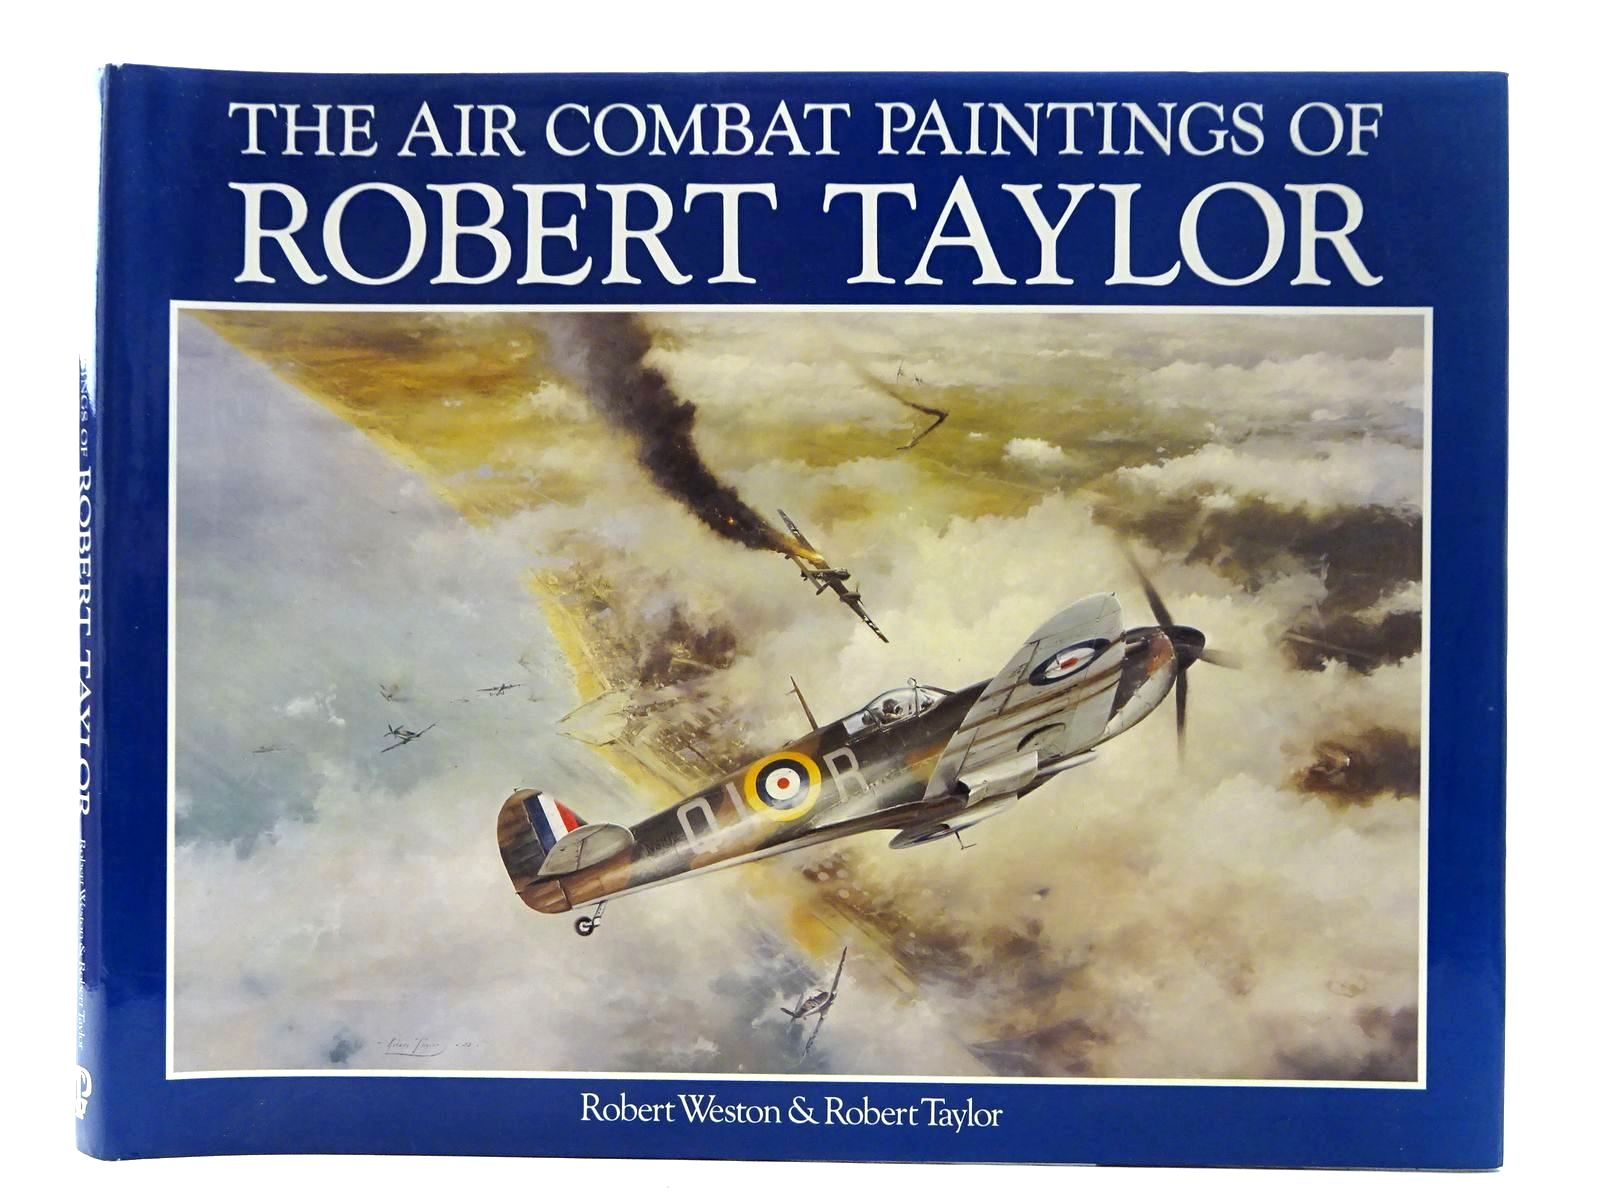 Photo of THE AIR COMBAT PAINTINGS OF ROBERT TAYLOR written by Weston, Robert<br />Taylor, Robert illustrated by Taylor, Robert published by Guild Publishing (STOCK CODE: 1610483)  for sale by Stella & Rose's Books